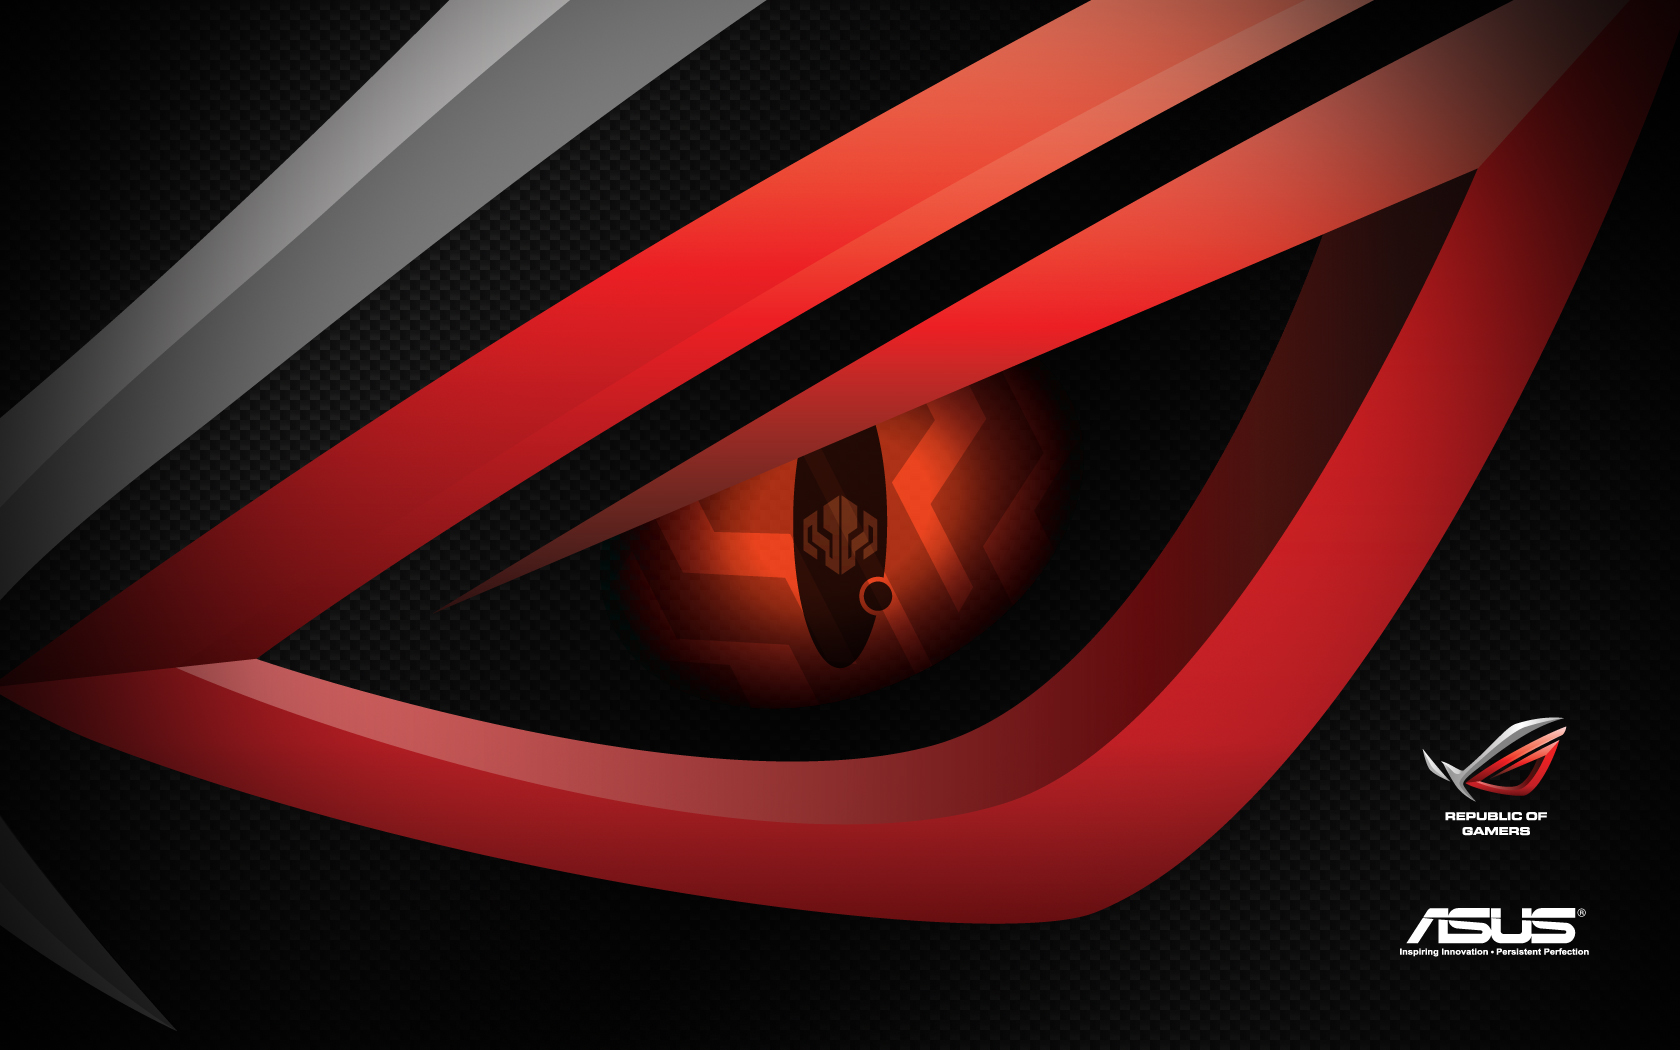 Amazing Asus ROG Pictures & Backgrounds